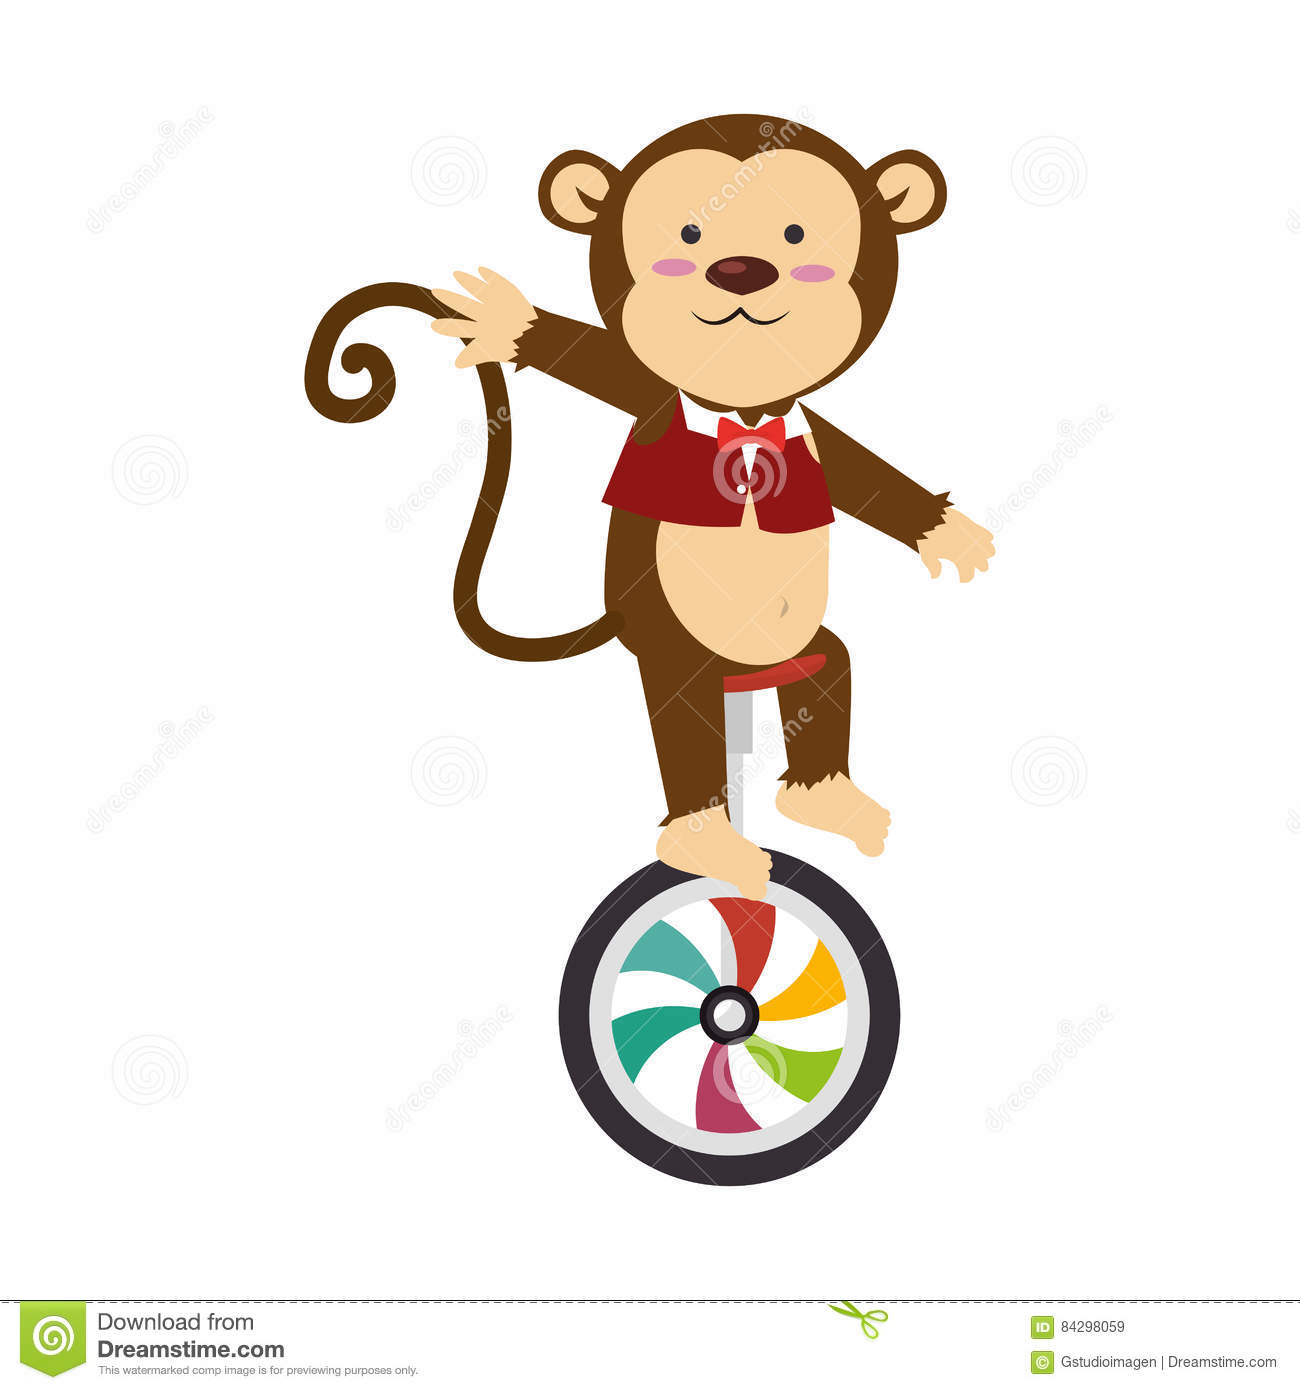 Cute monkey circus animal stock illustration. Illustration of.